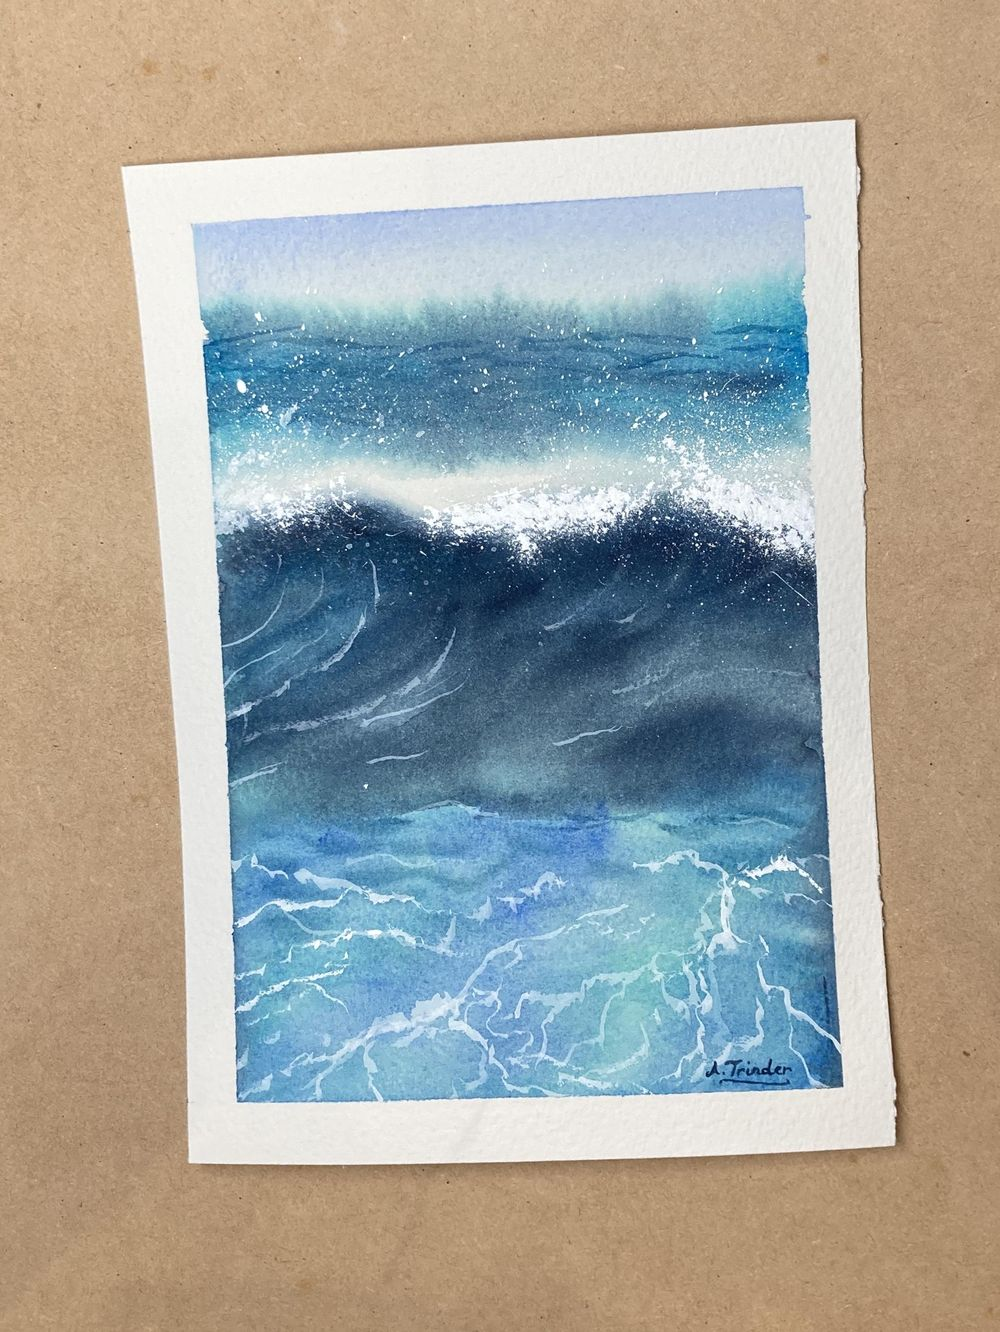 Waves - image 3 - student project